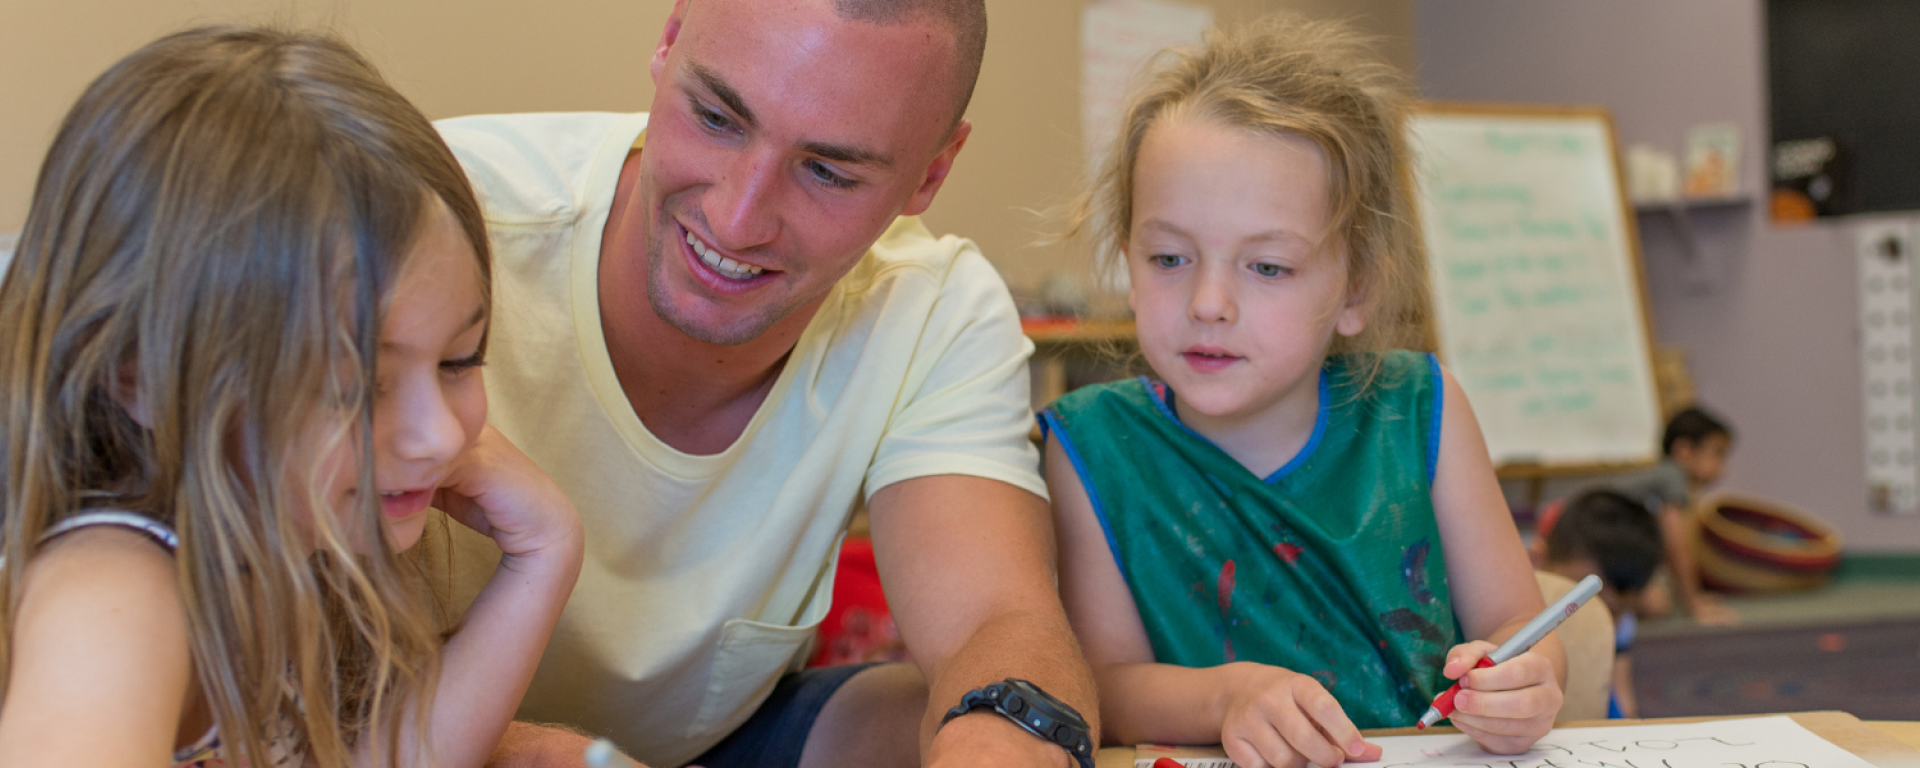 Student working with children at the Child Study and Development Center